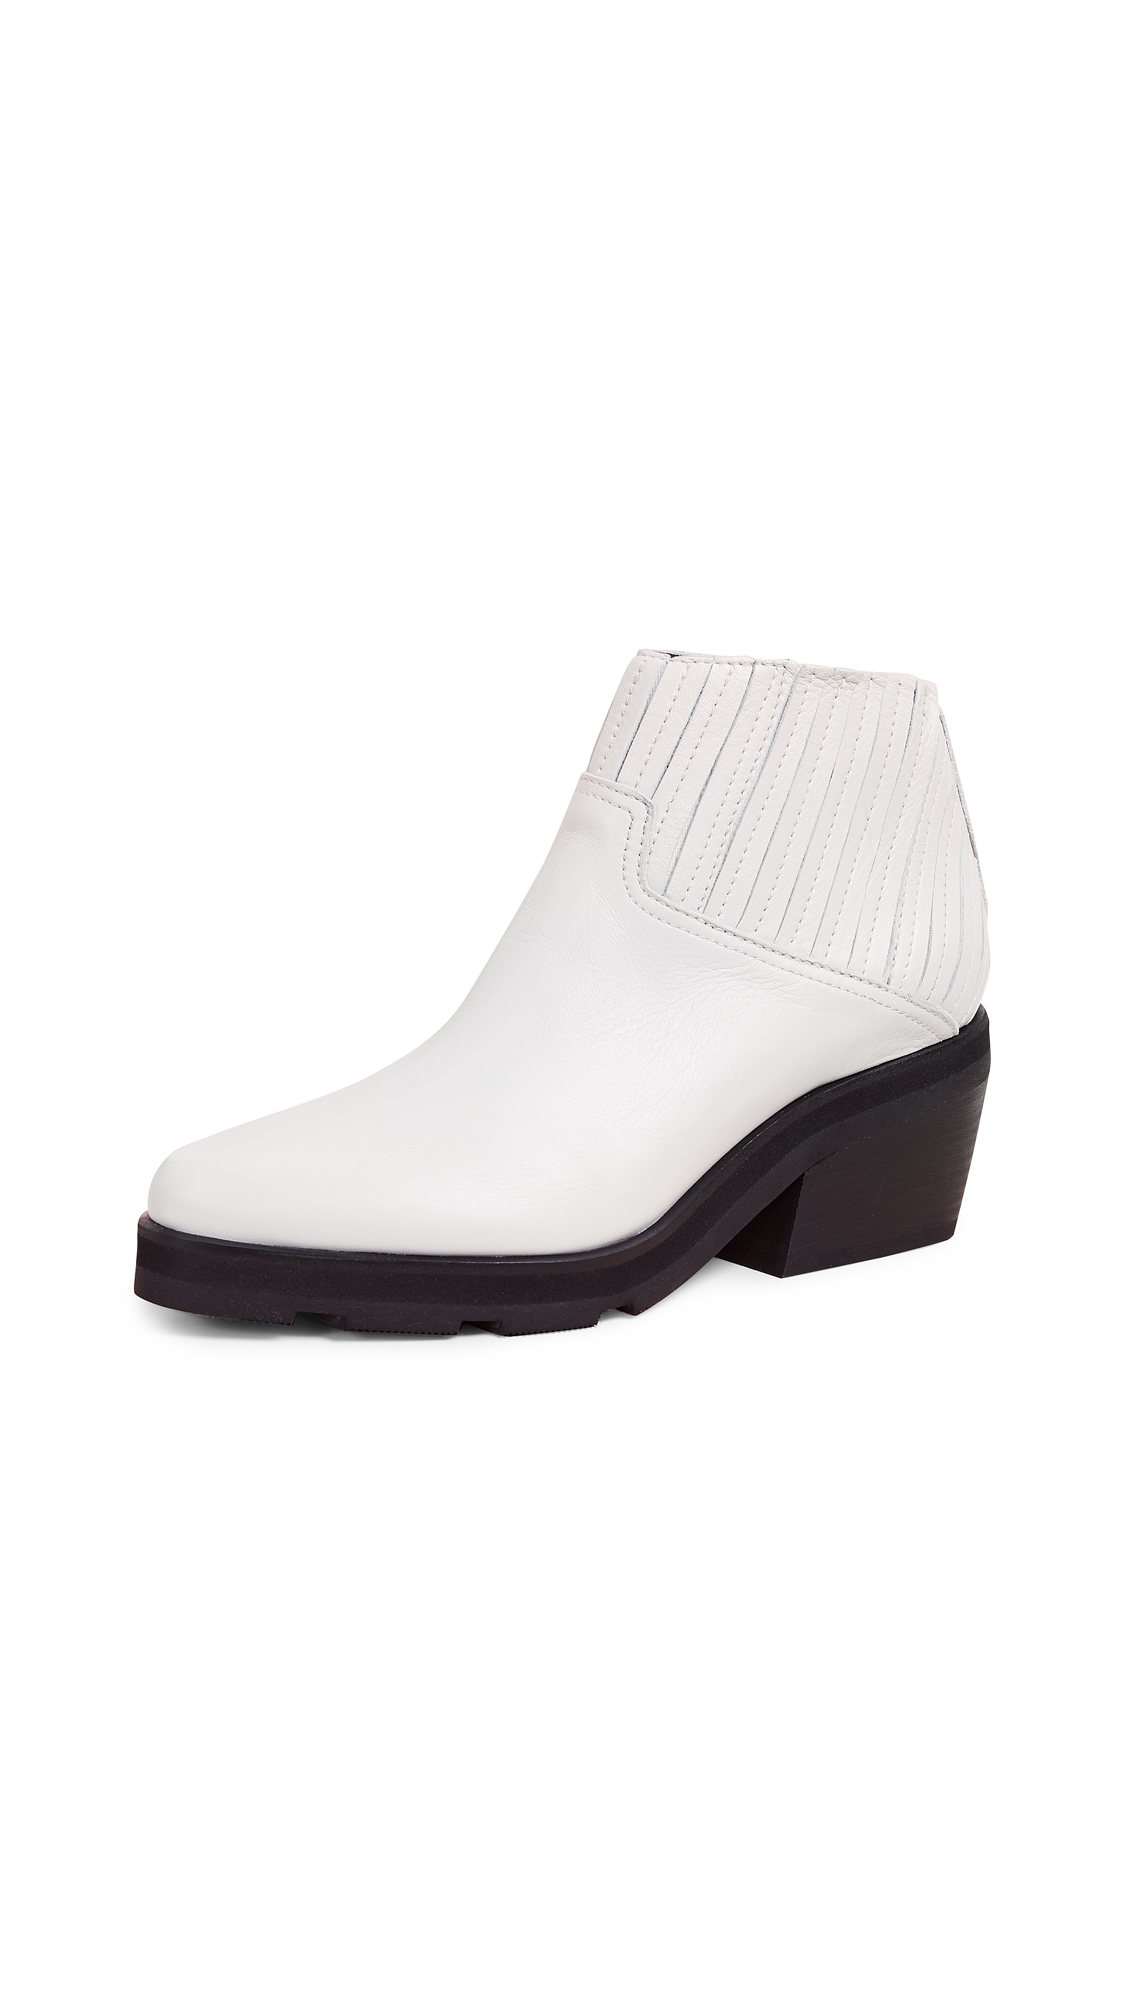 LD TUTTLE The Concord Ankle Boots in Plaster